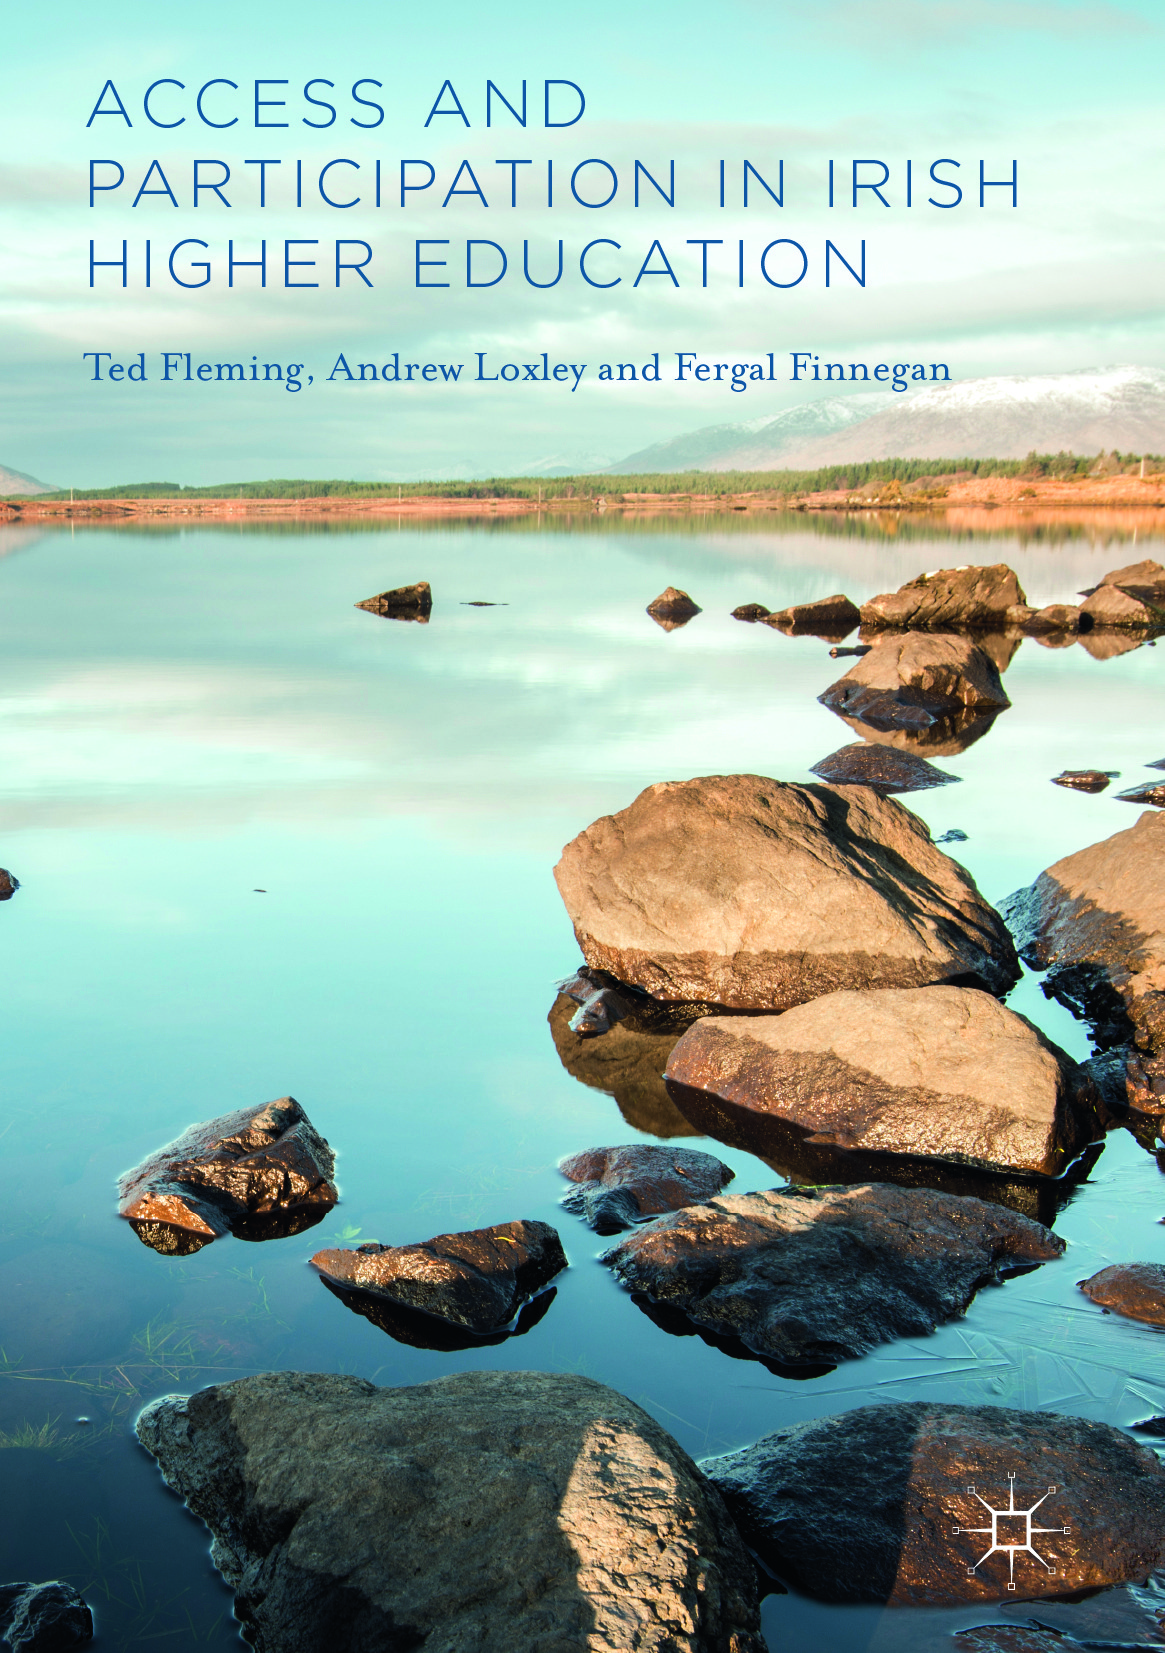 Finnegan, Fergal - Access and Participation in Irish Higher Education, ebook